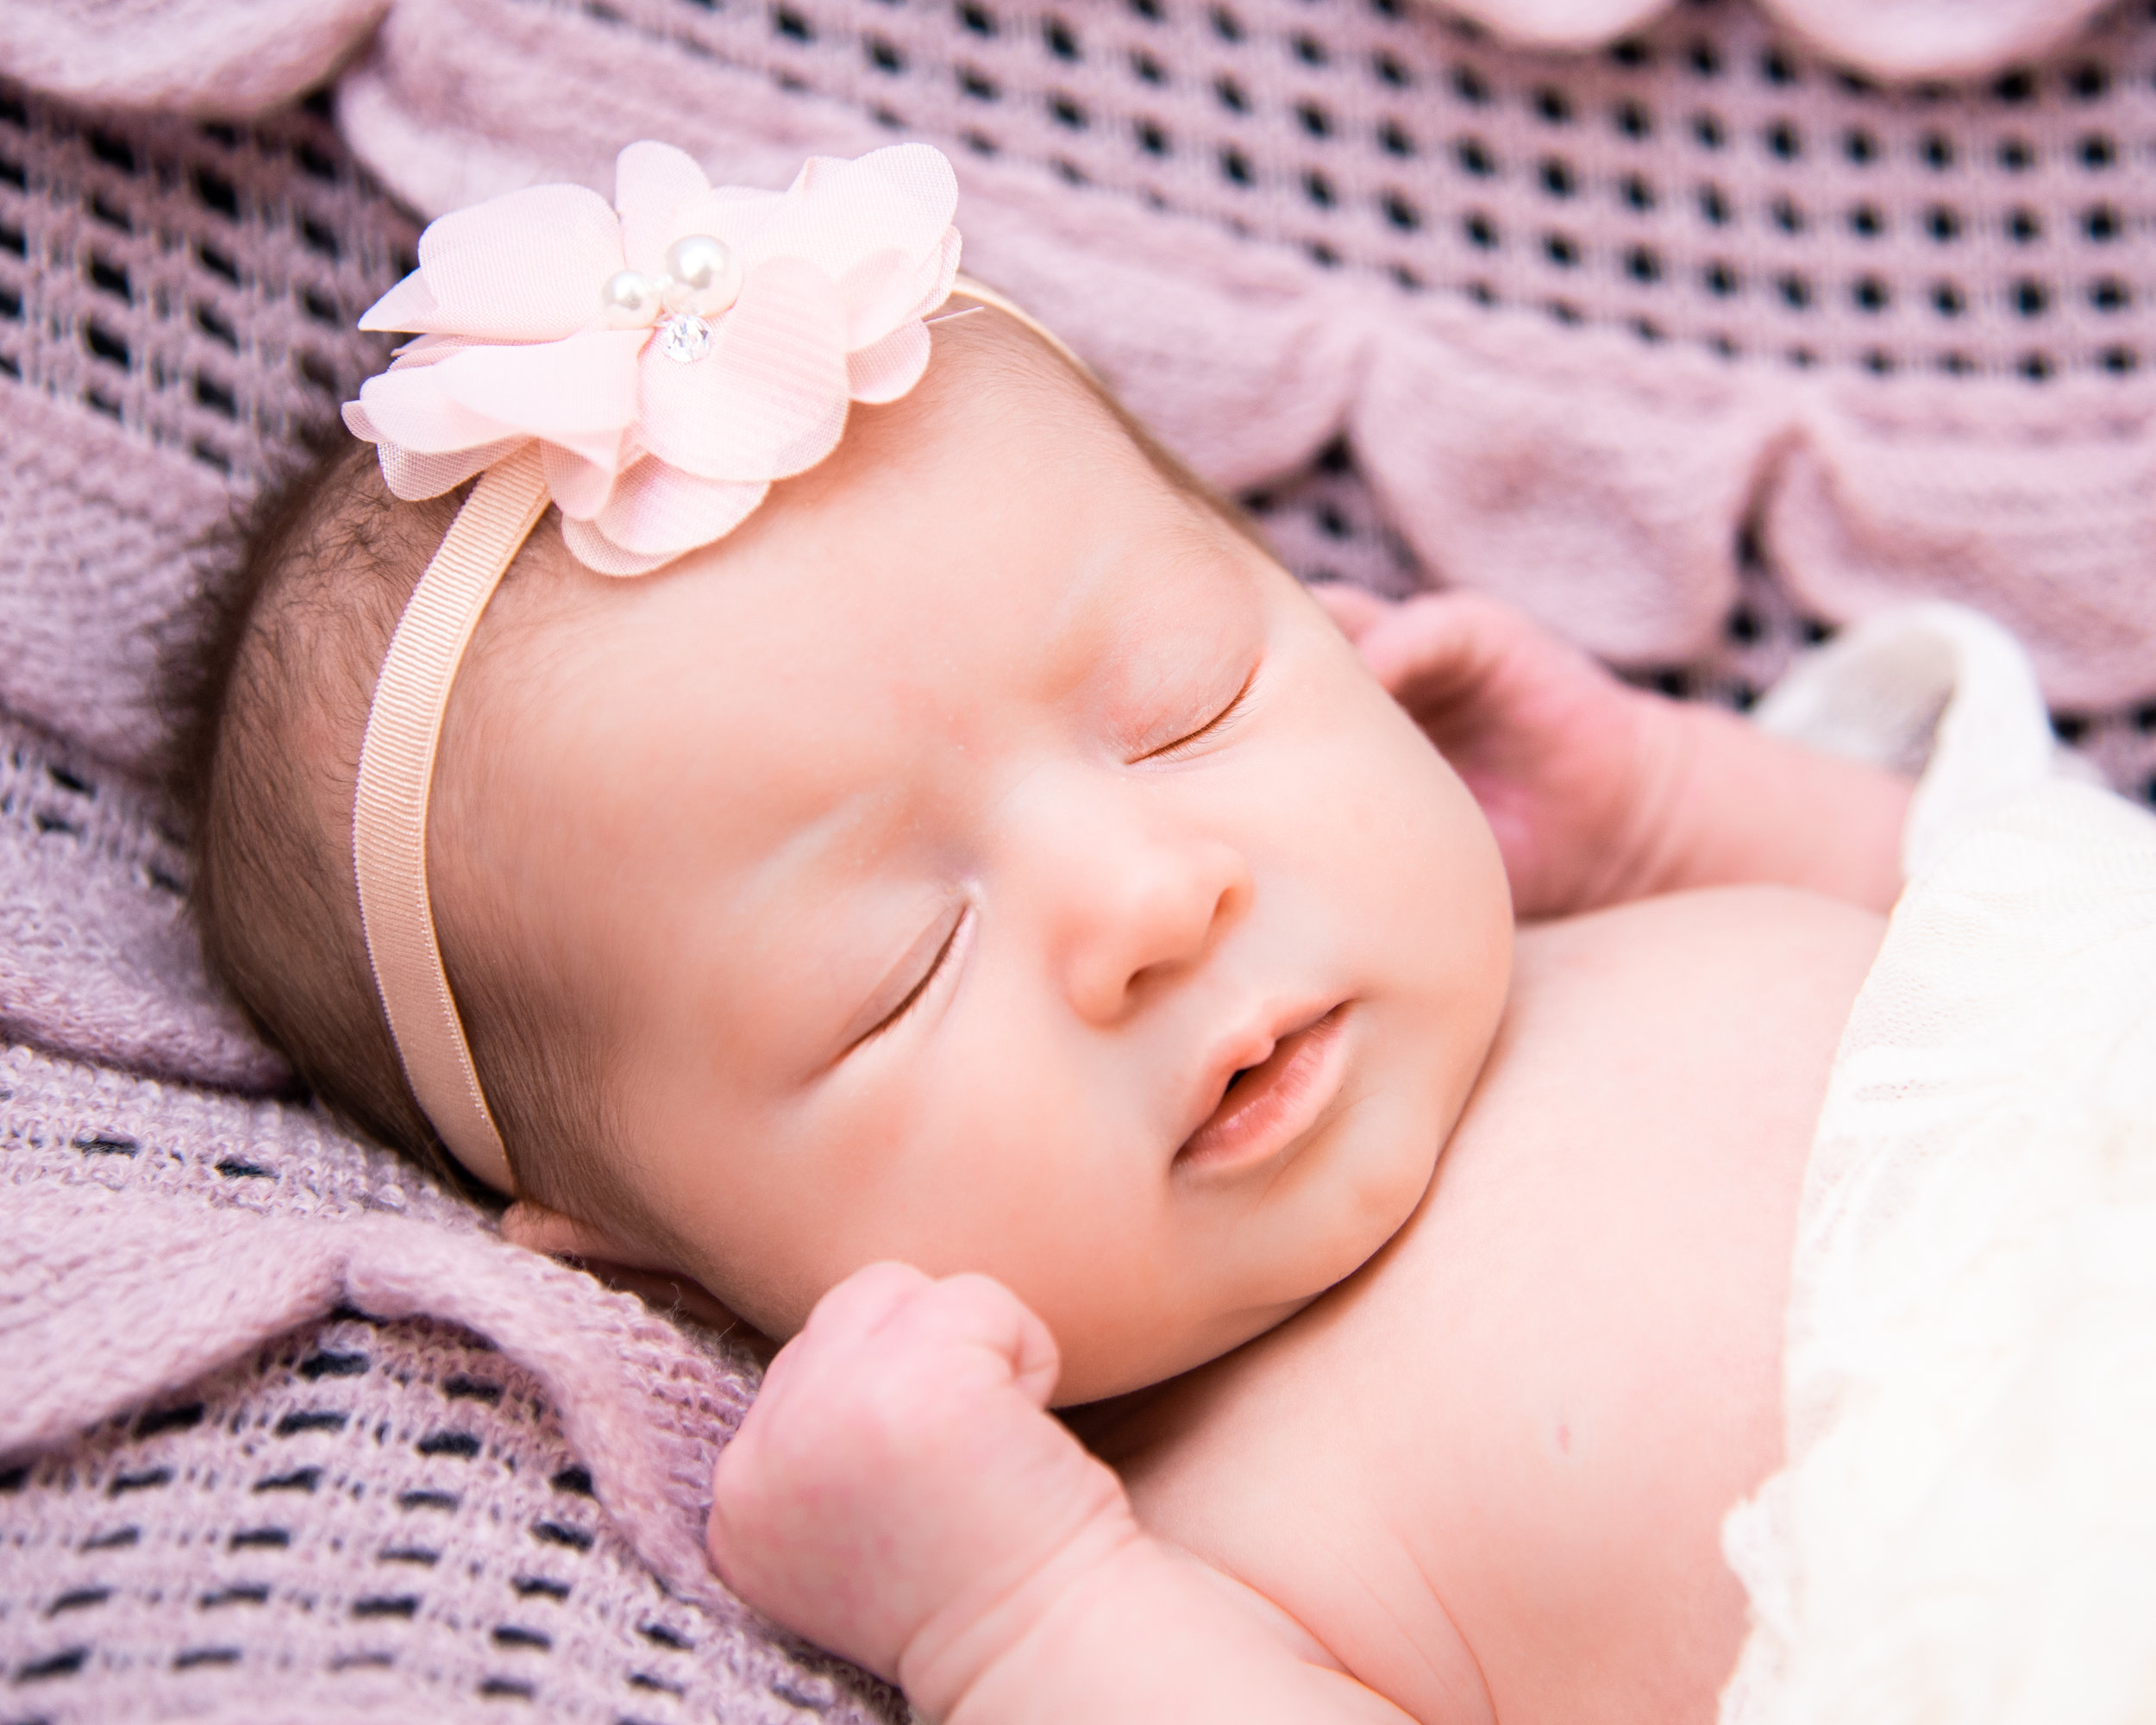 Kyla Jo Photography // Muncie, Indiana // Newborn Photos // Newborn Session // Muncie indiana newborn session // Newborn photographer muncie indiana // indiana newborn photographer // Midwest Newborn Photos // Muncie Indiana Studio Photography